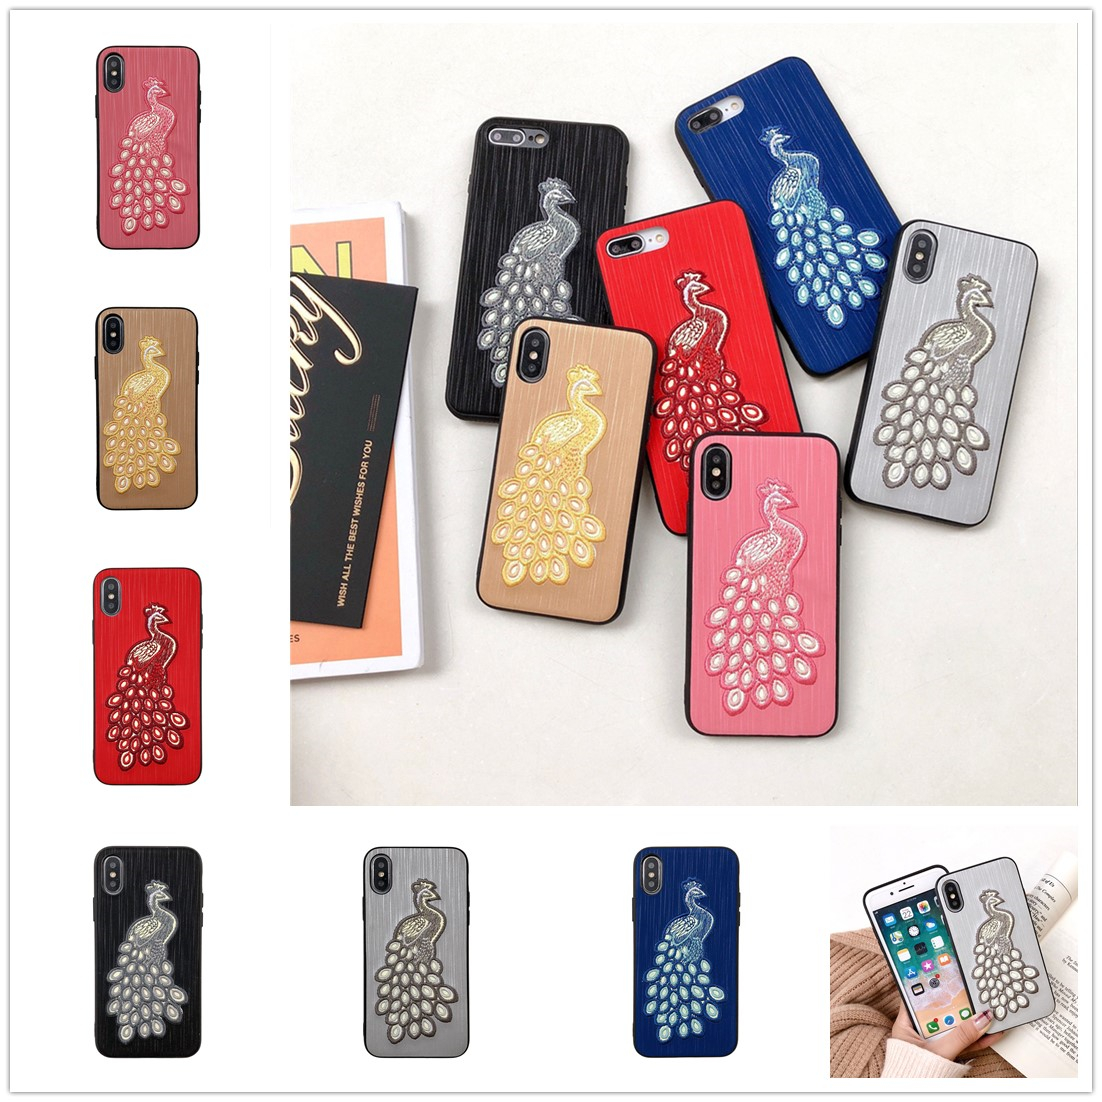 XS Max Embroidery Fundas for IPhone XR 3D Peacock Back Cover Phone Shell for IPhone 8 7 Plus 6 6S Plus Luminous Night Light Case